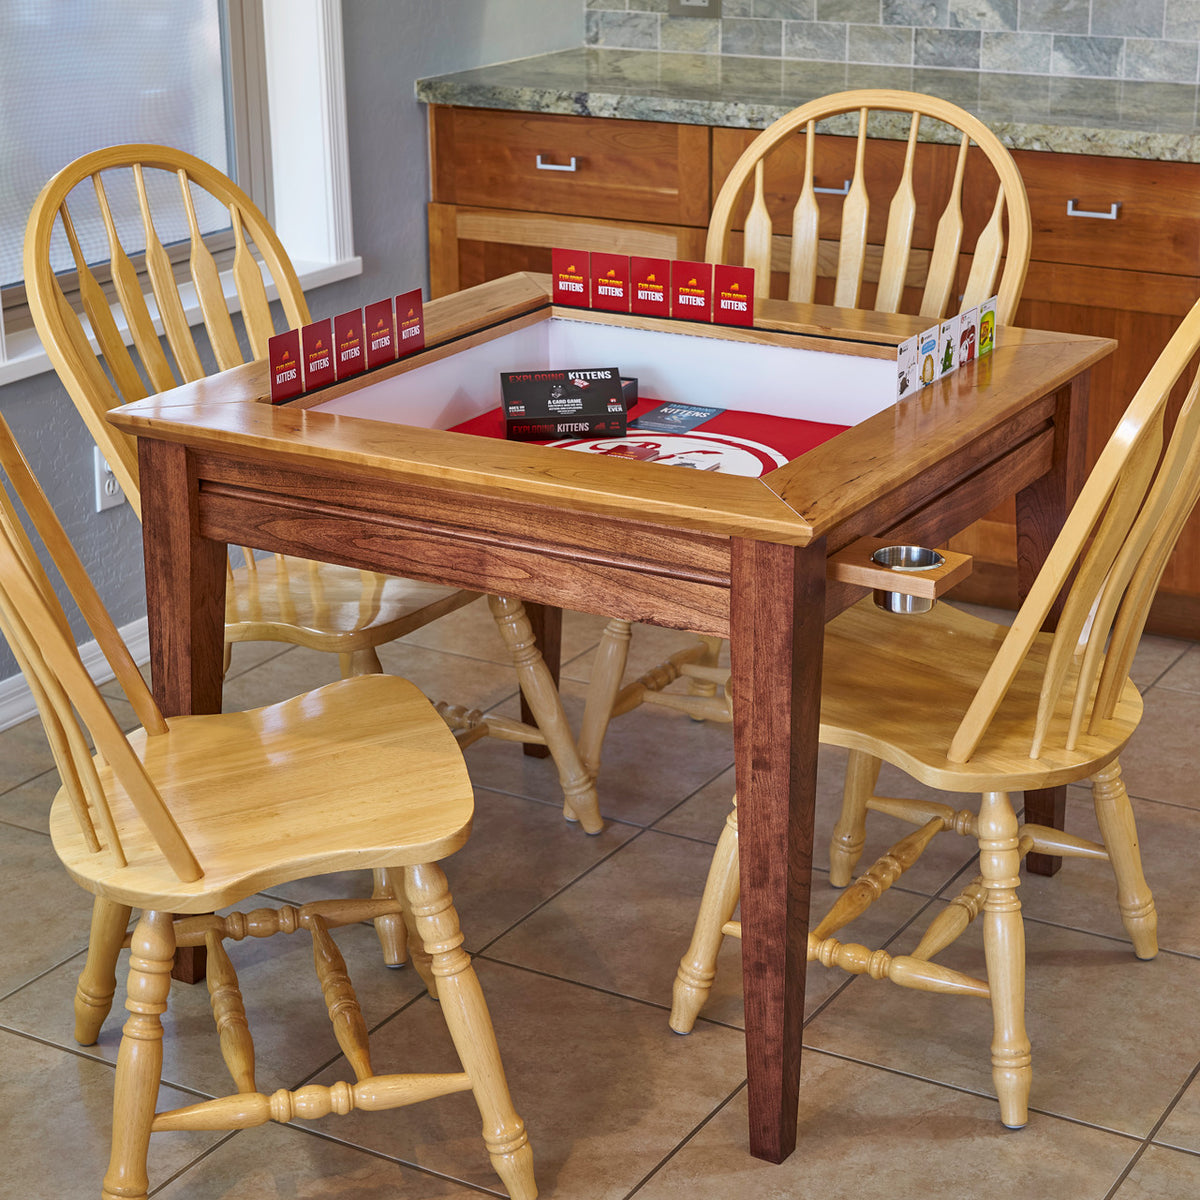 Custom Gaming table designed by uniquely-geek for all your table top gaming and dining table needs